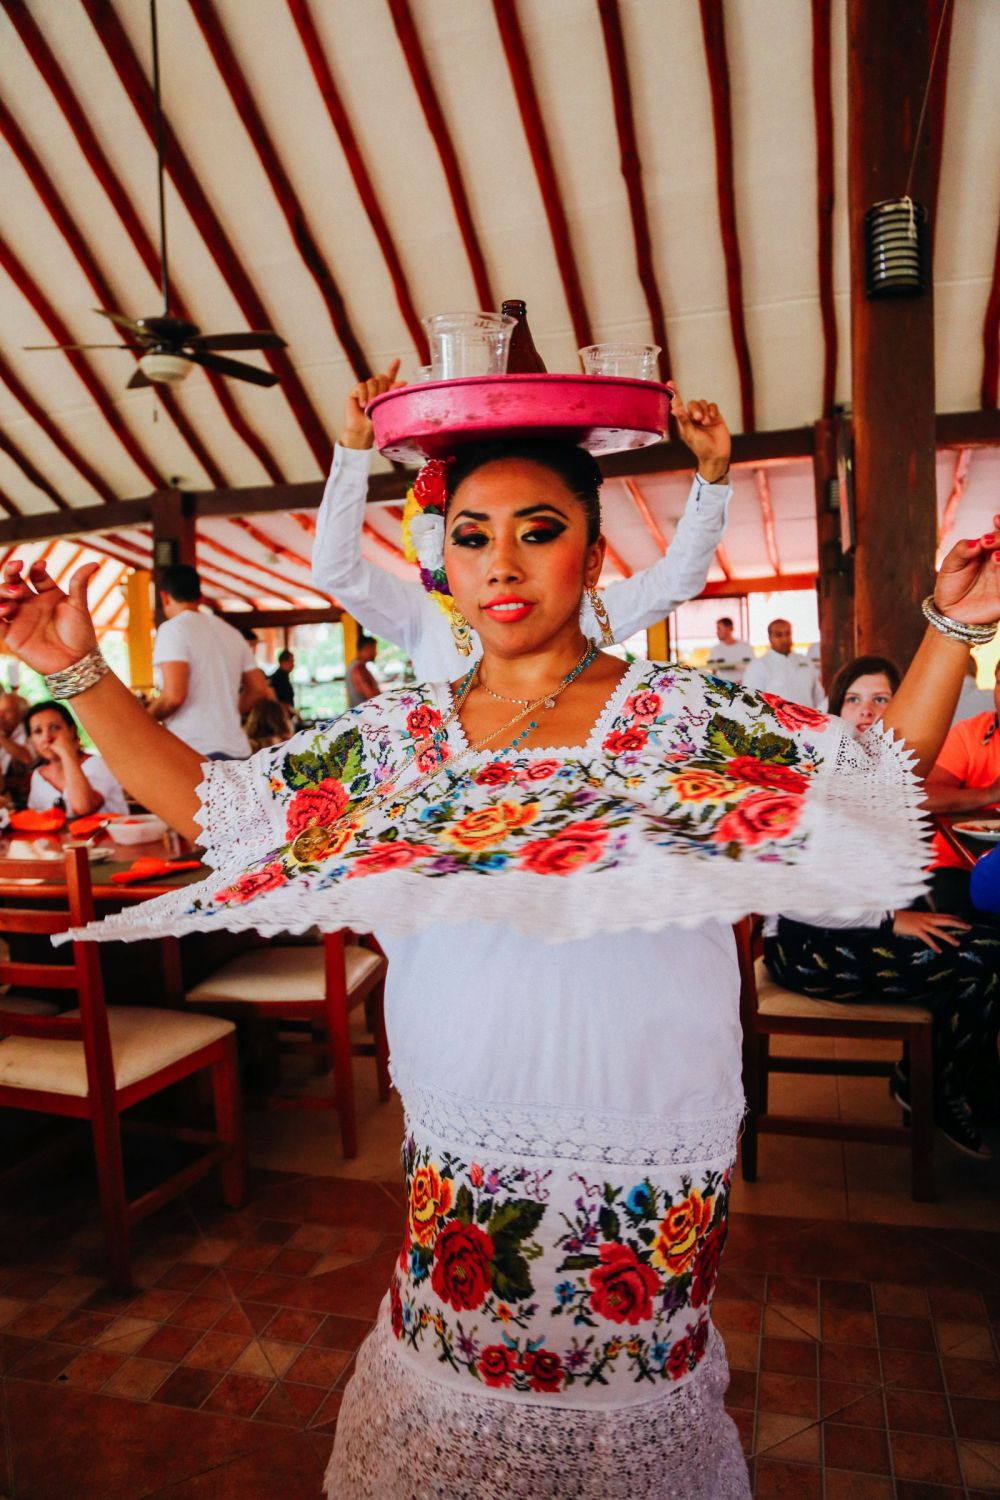 9 Things To Do When You Visit Cancun In Mexico That Don't Involve Partying (30)